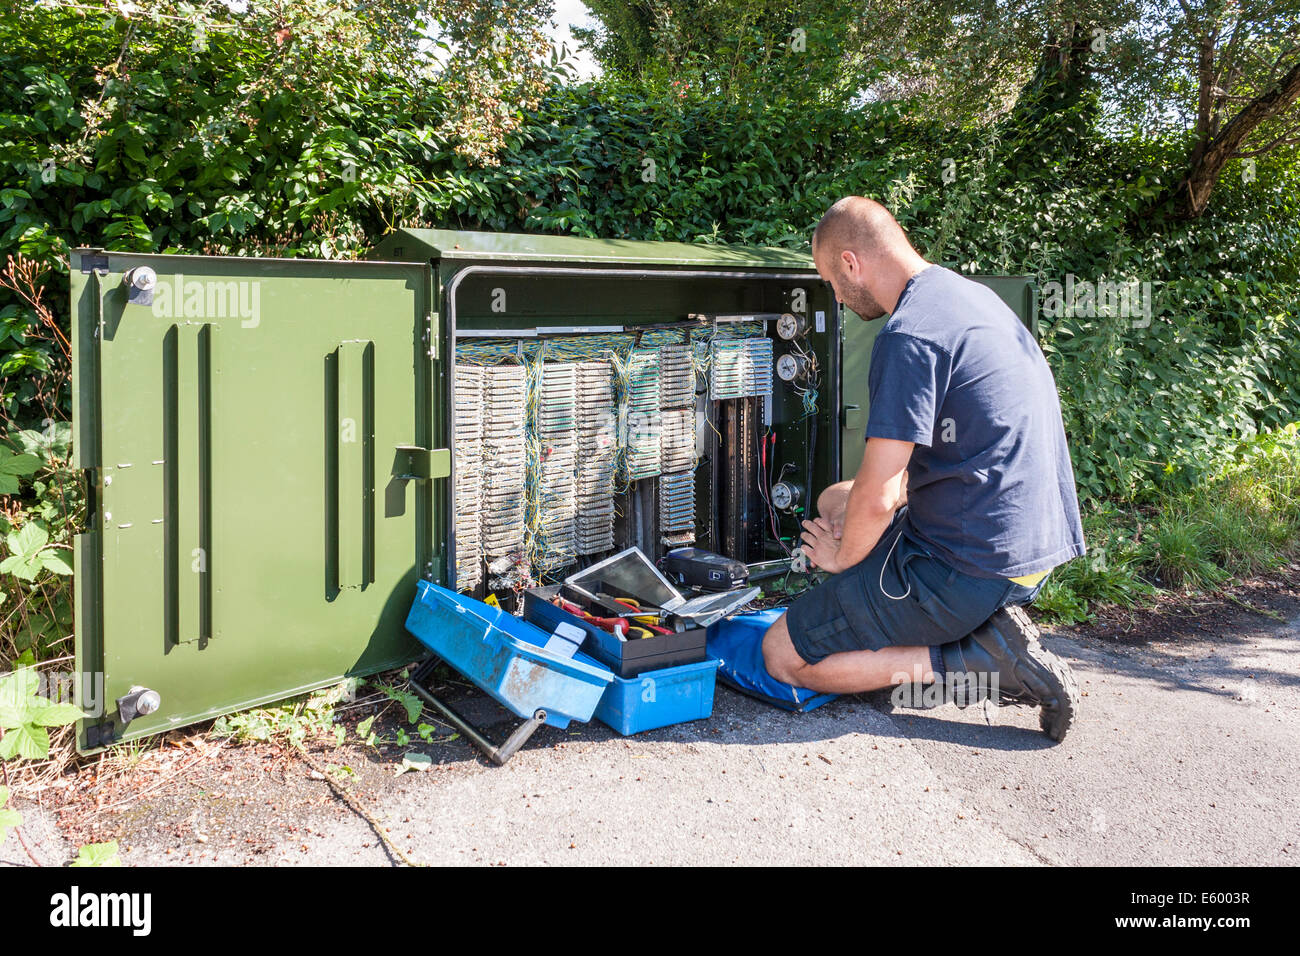 Engineer working for BT Openreach corrects broadband faults at a roadside terminal. - Stock Image